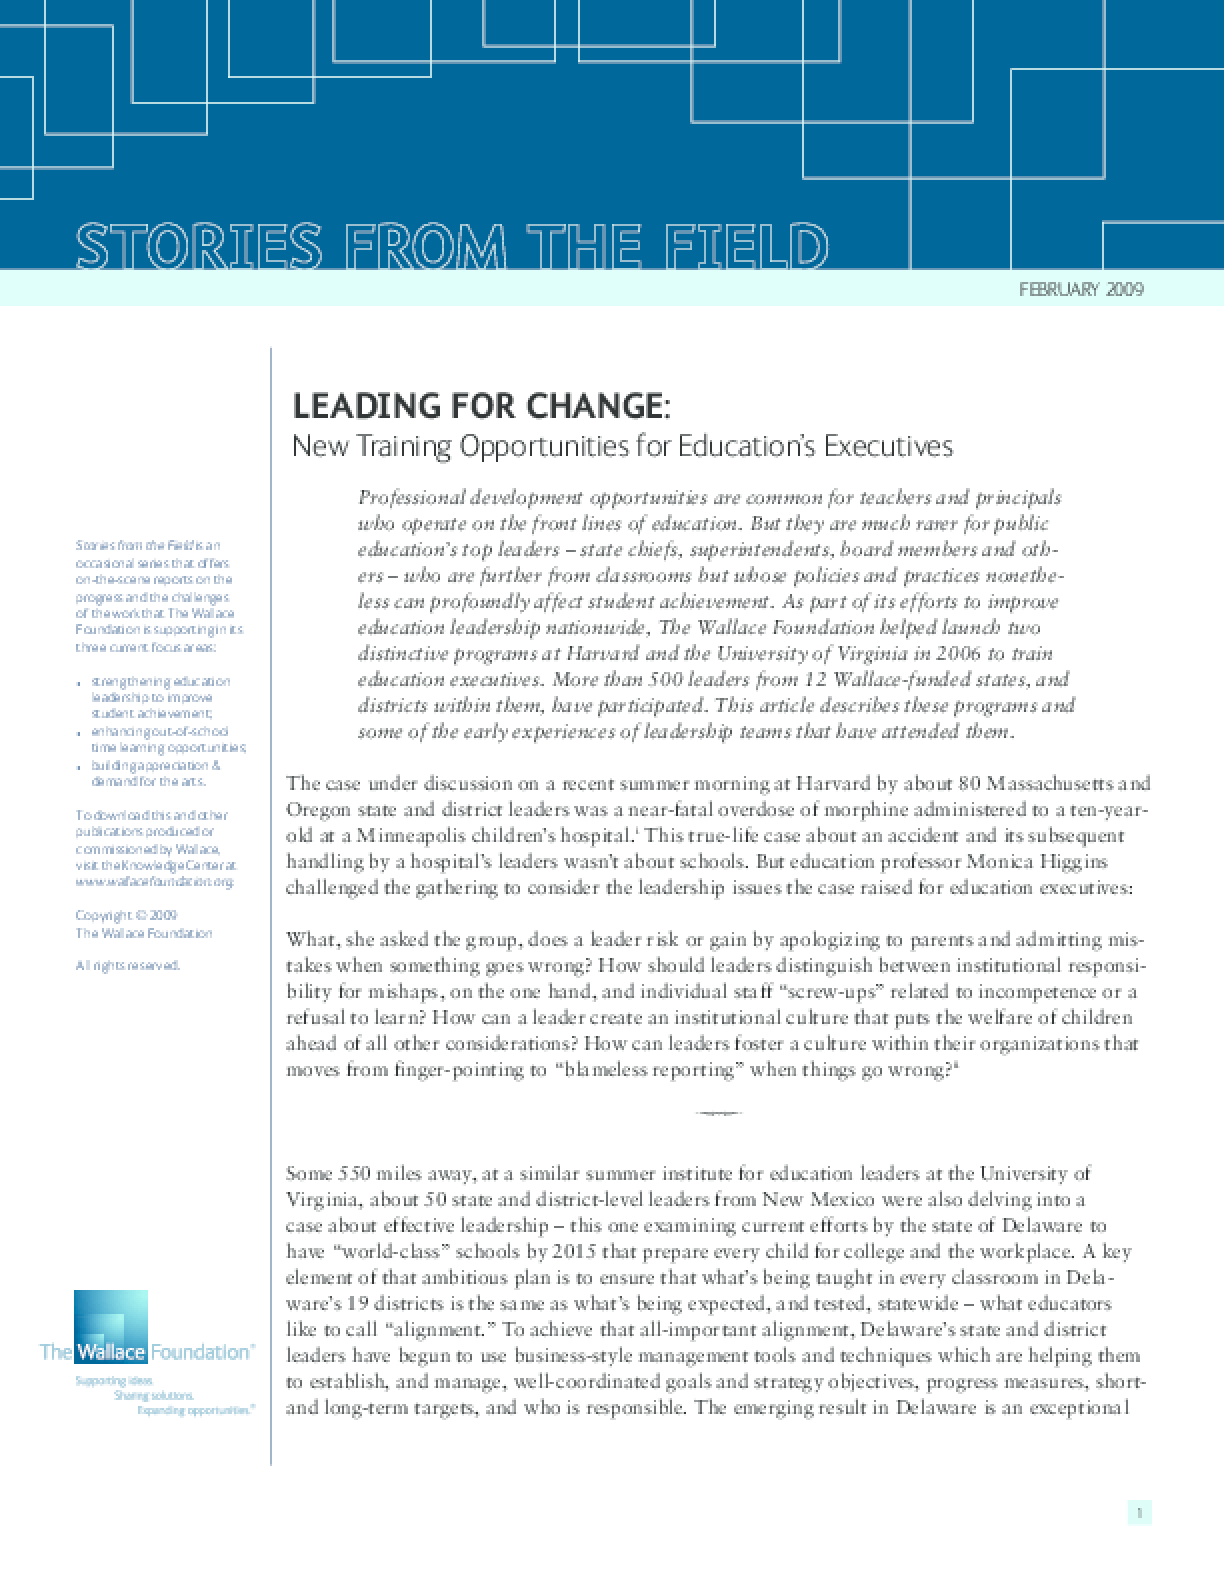 Leading for Change: New Training Opportunities for Education's Executives